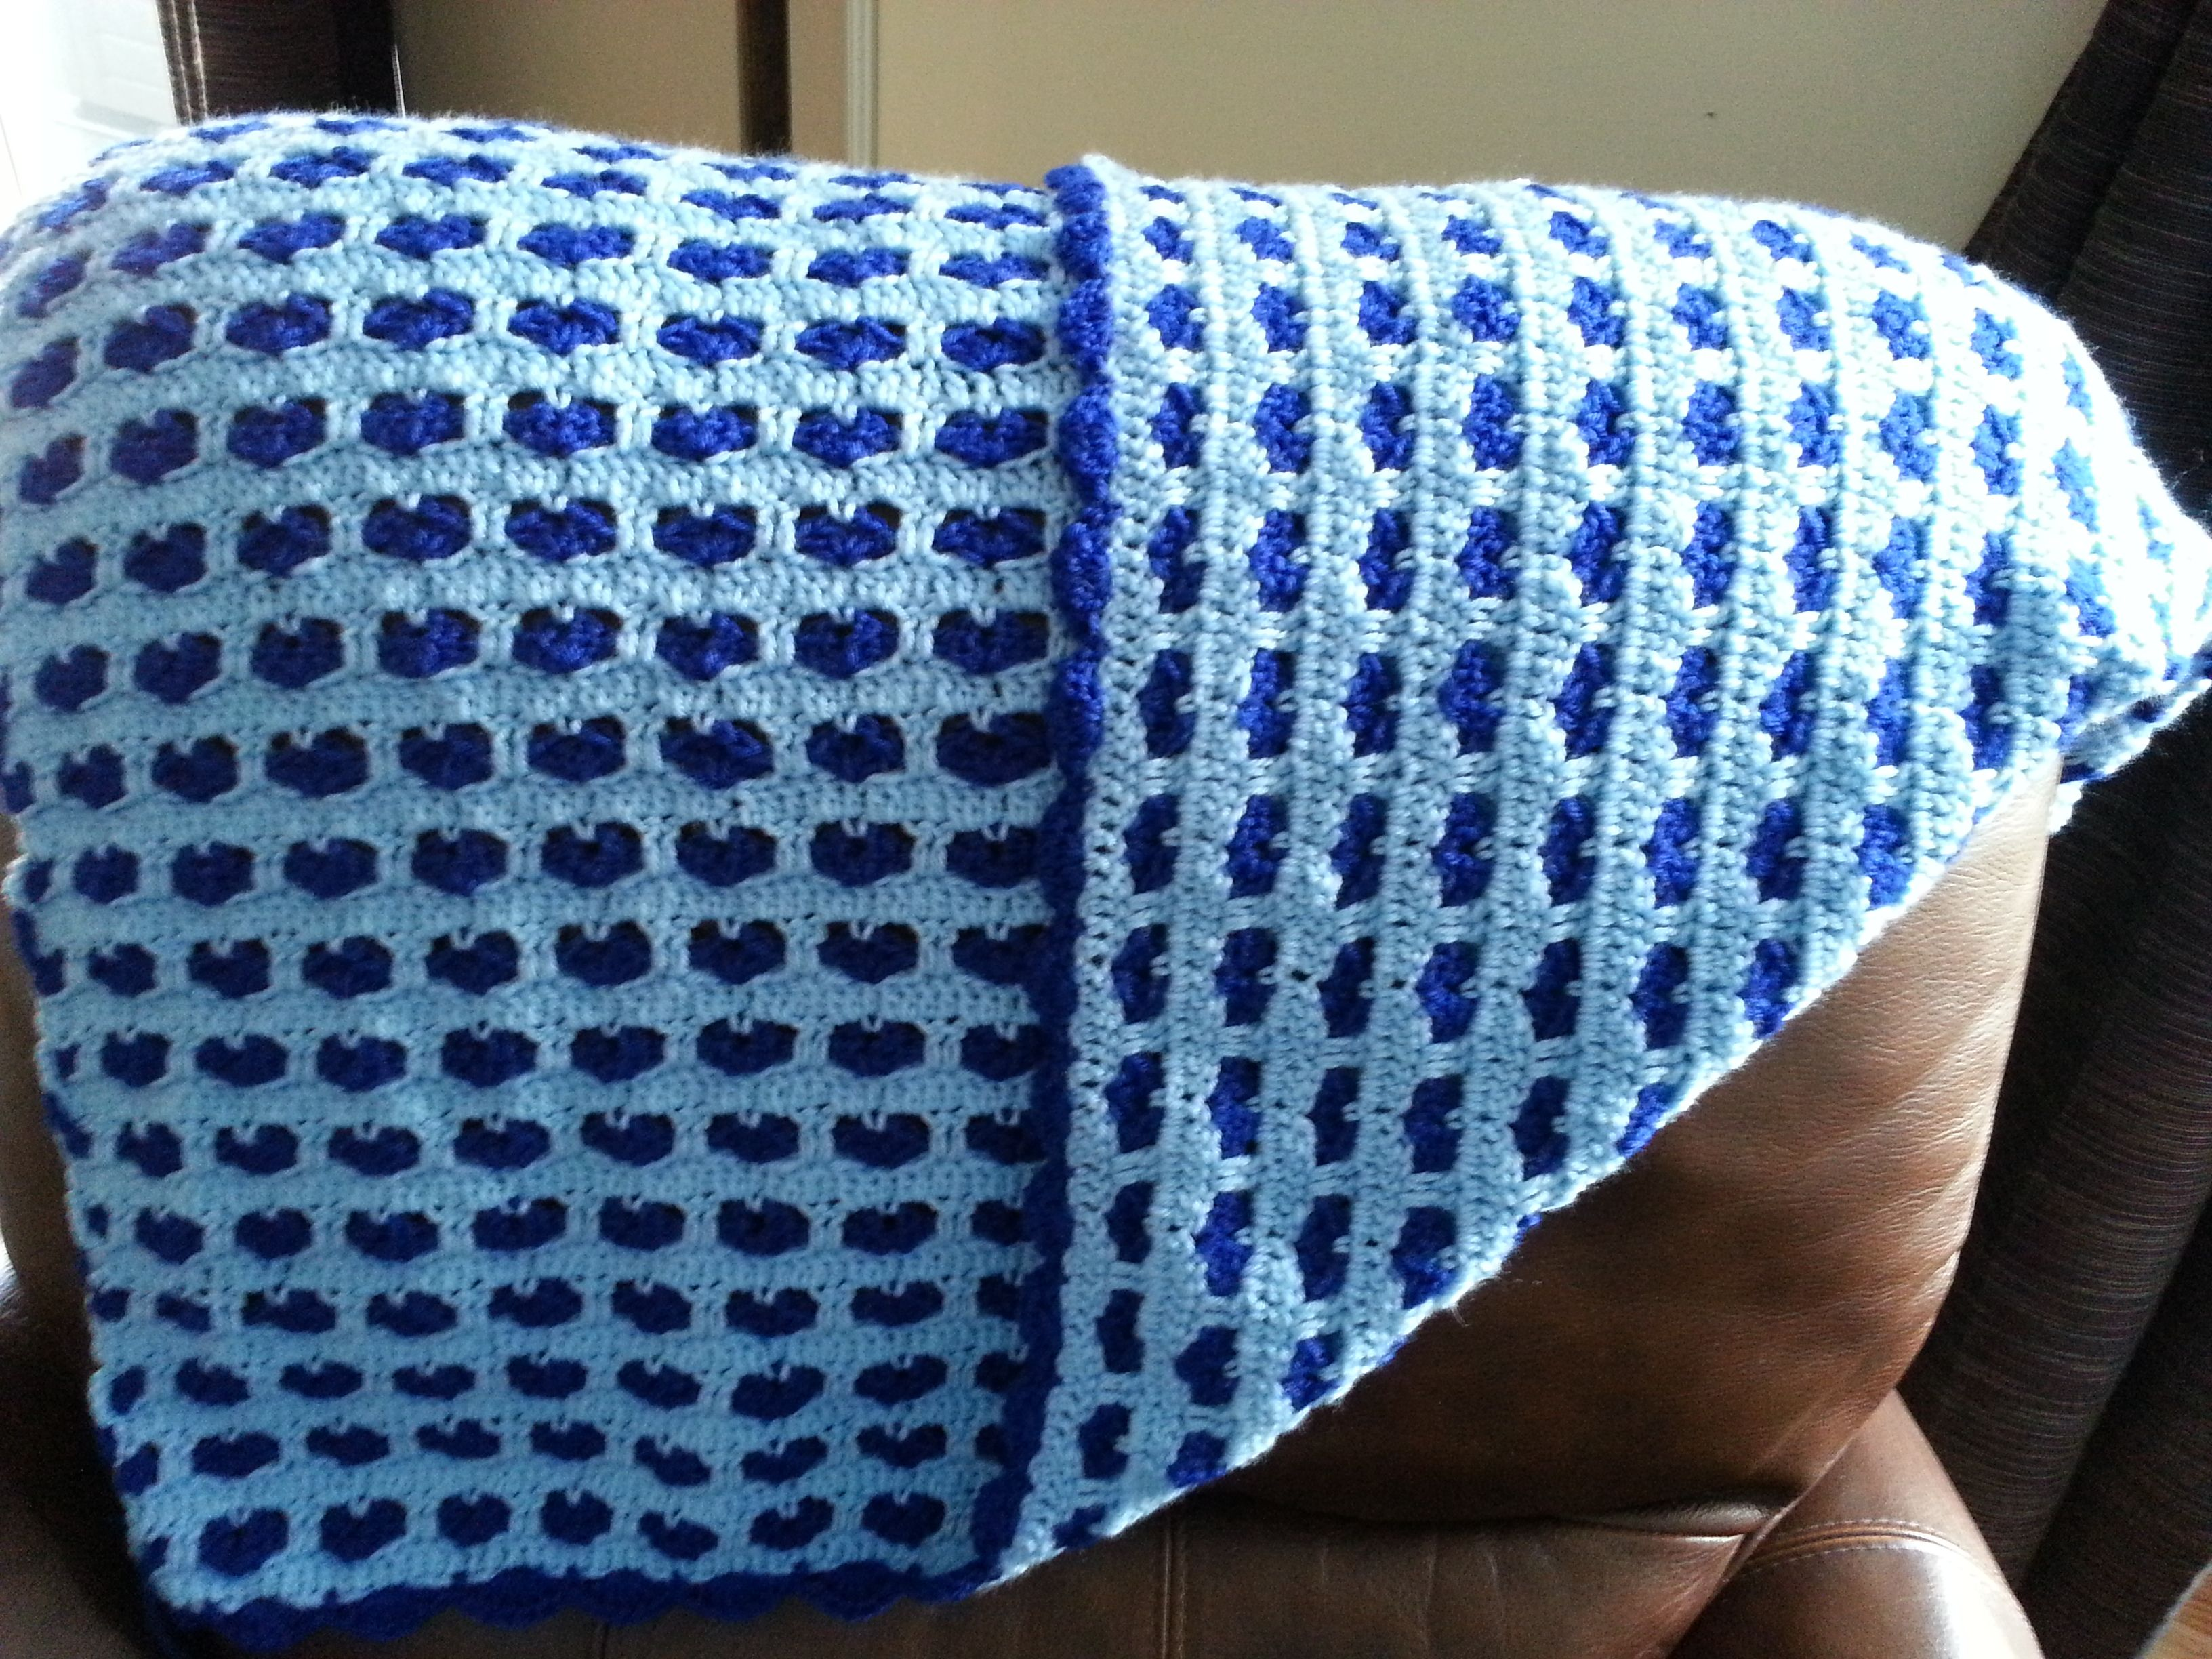 Love this pattern. See it in my projects on ravelry - user writeknit